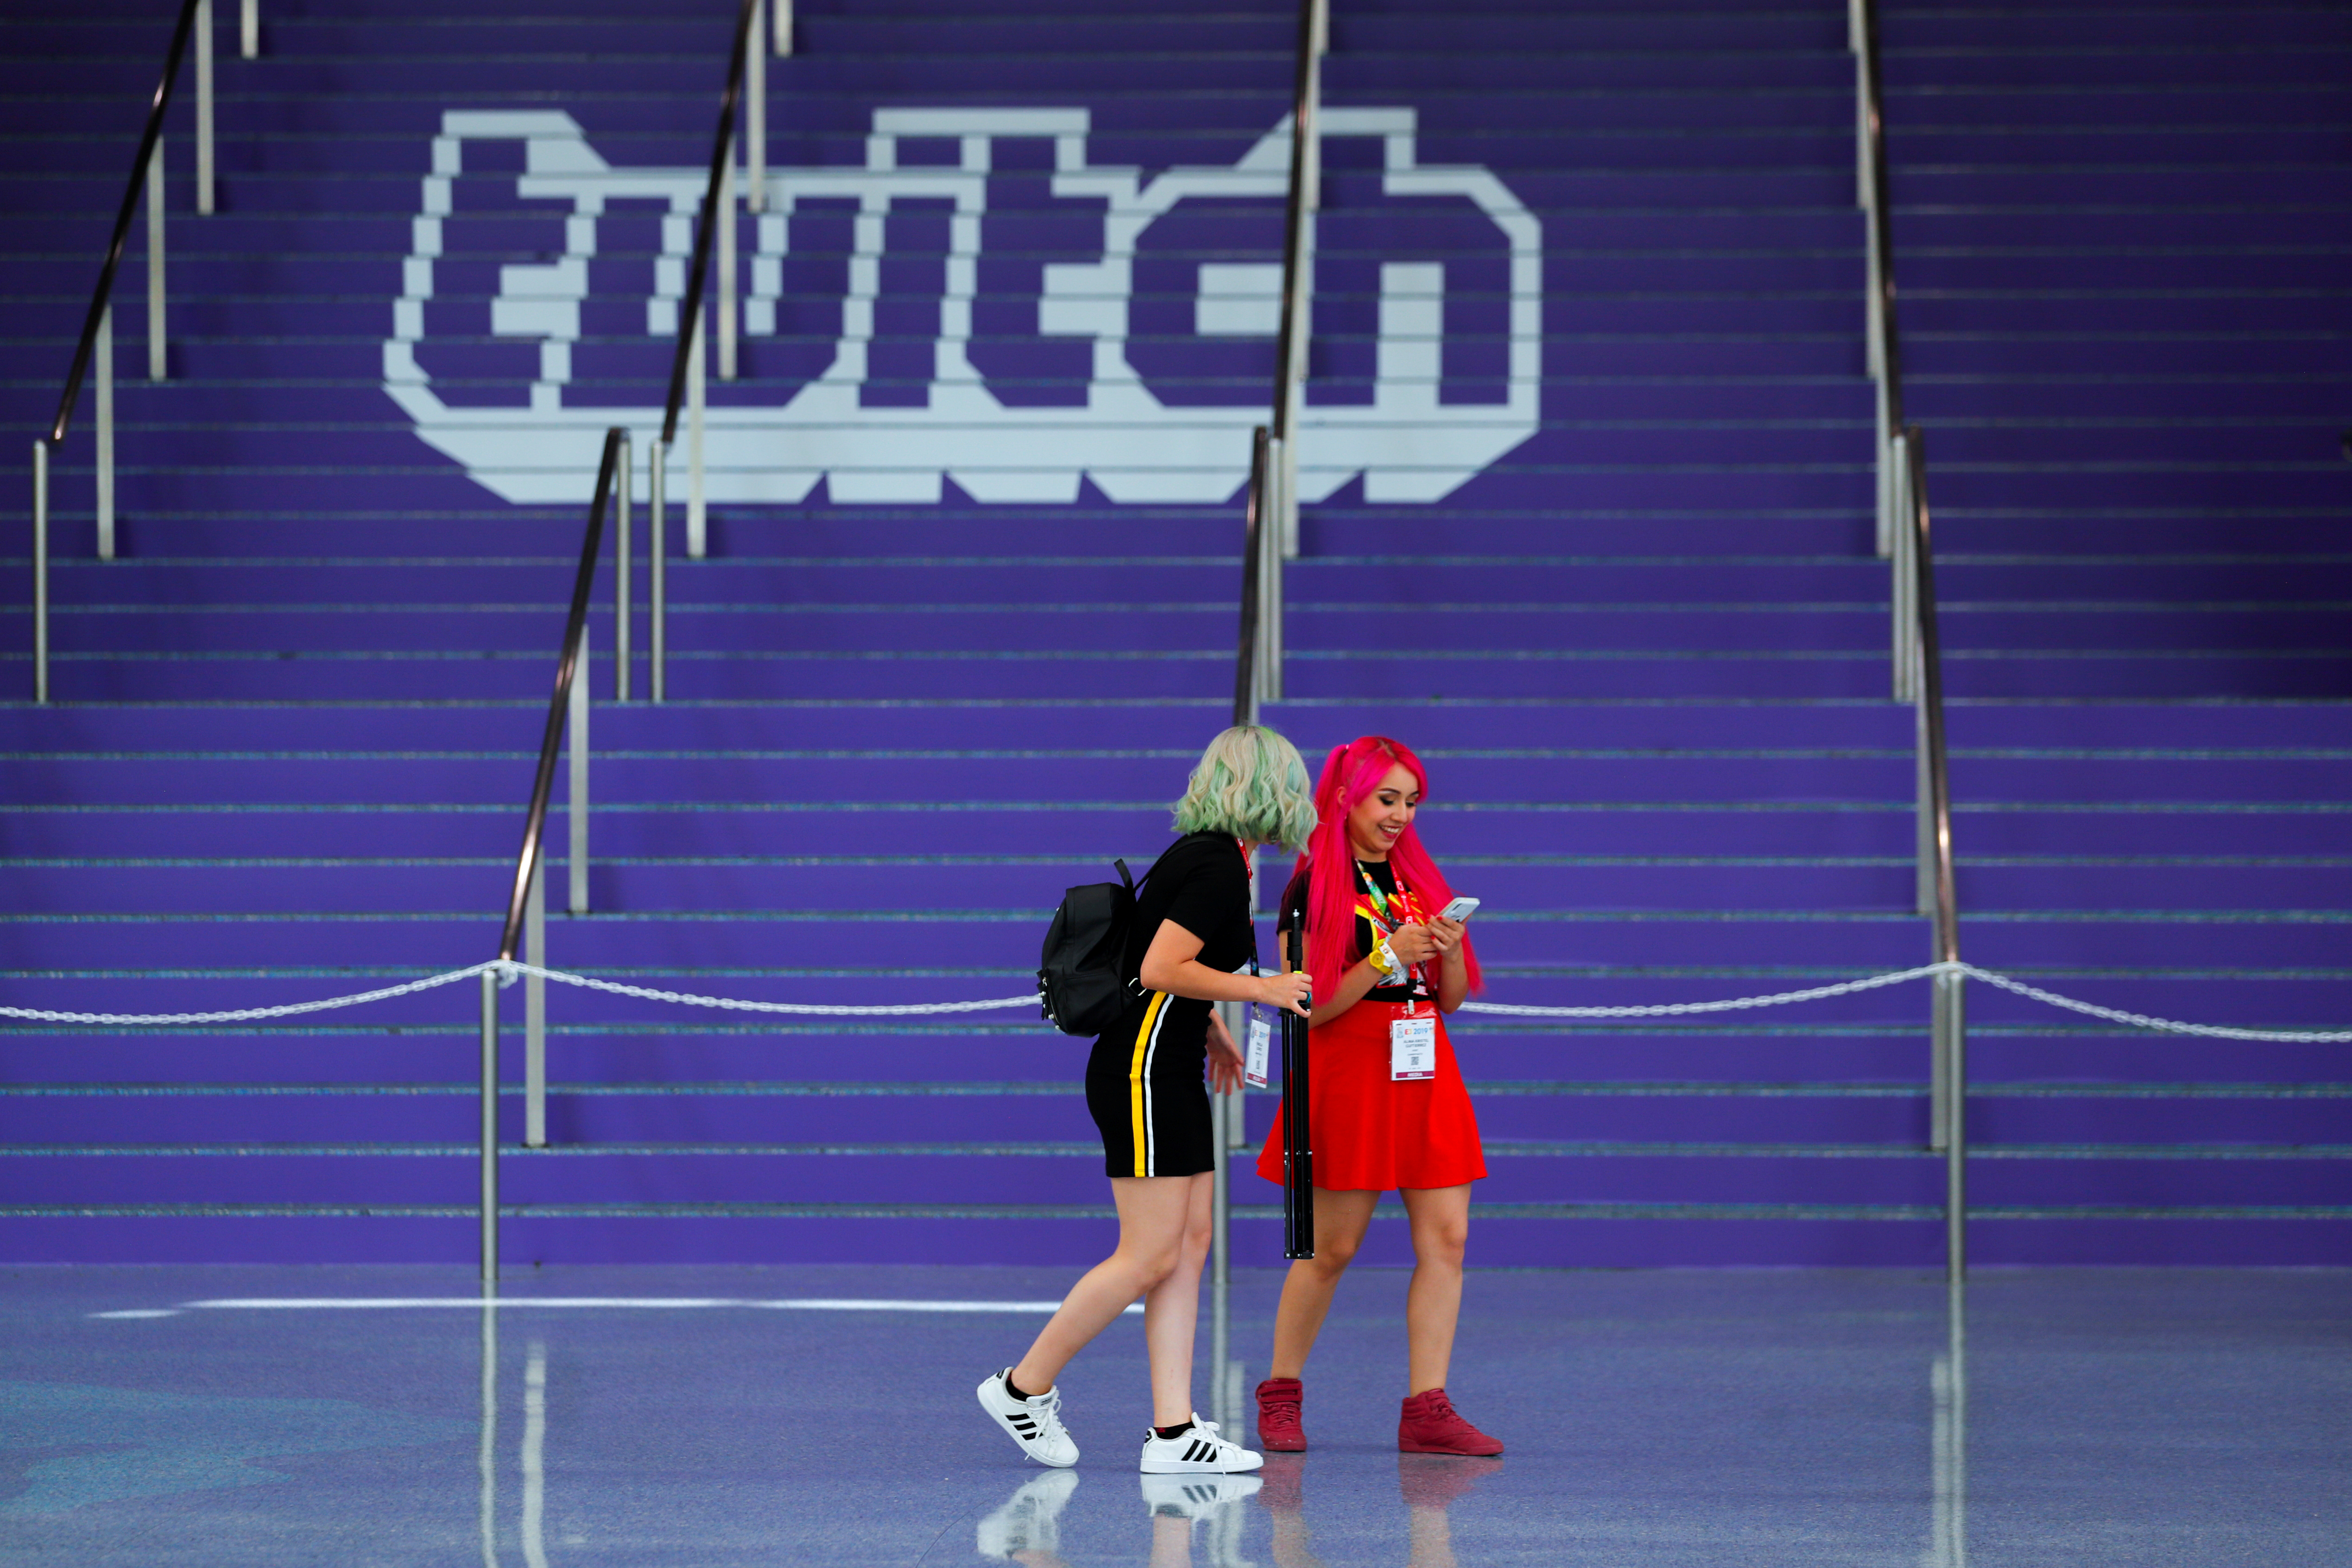 Attendees walk past a Twitch logo painted on stairs during opening day of E3, the annual video games expo revealing the latest in gaming software and hardware in Los Angeles, California, U.S., June 11, 2019.  REUTERS/Mike Blake